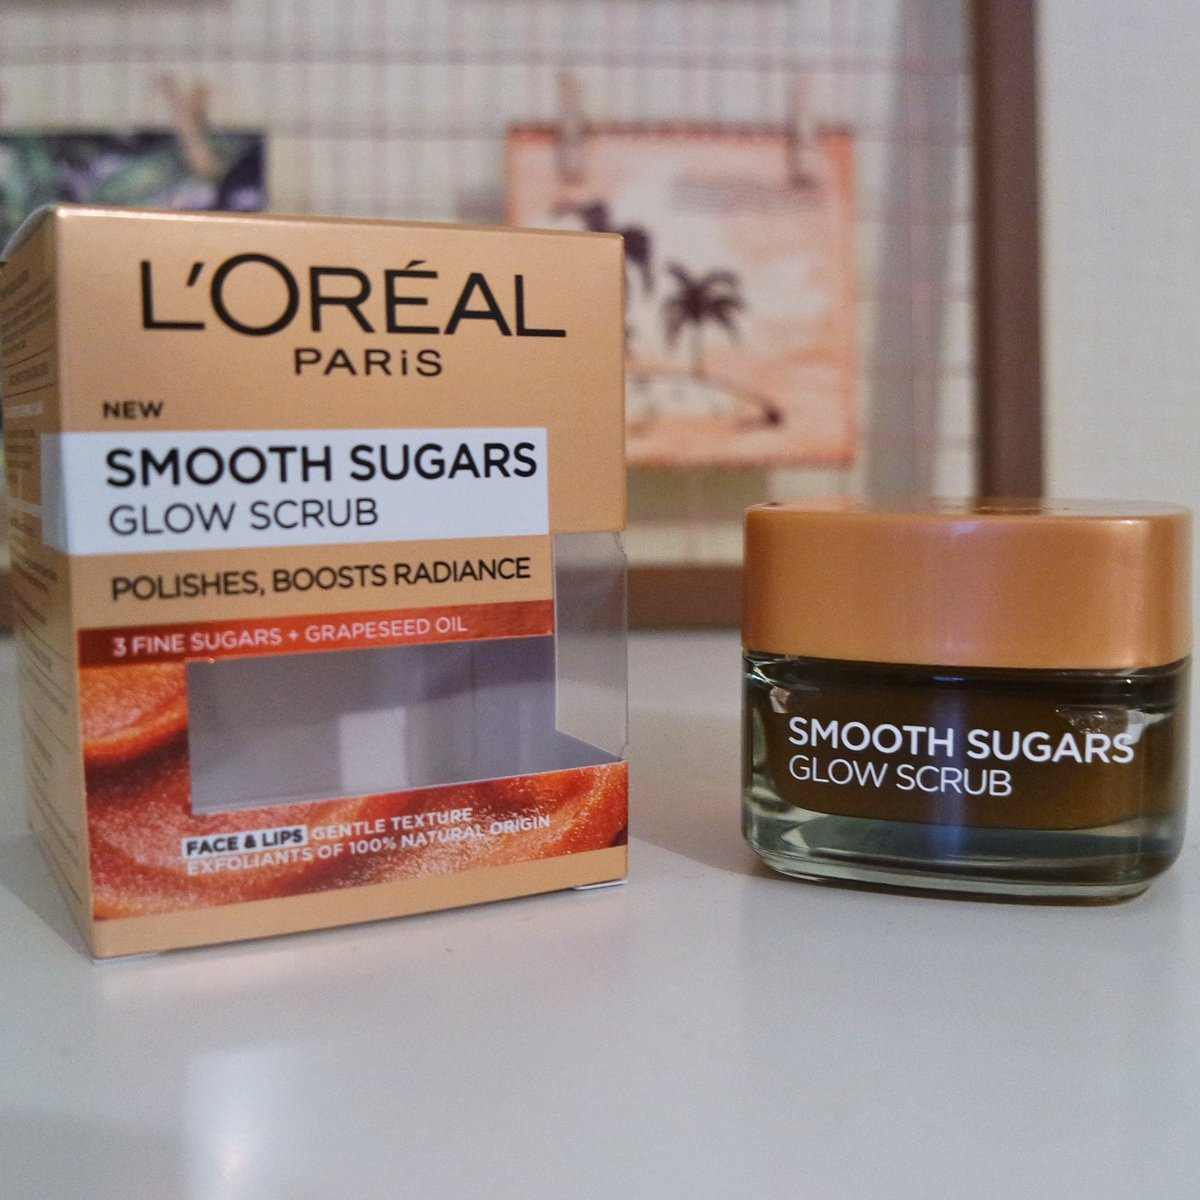 Hey Guys! Check out my first impressions and review of L'Oreal's Smooth Sugar Glow Scrub http://www.houseofheight.co.uk/2018/01/loreal-smooth-sugar-glow-scrub-review.html … #Loreal #firstimpressions #review #beautyreview #sugarscrub #exfoliate #beauty #beautyblogger #bblogger #bbloggers #blogger